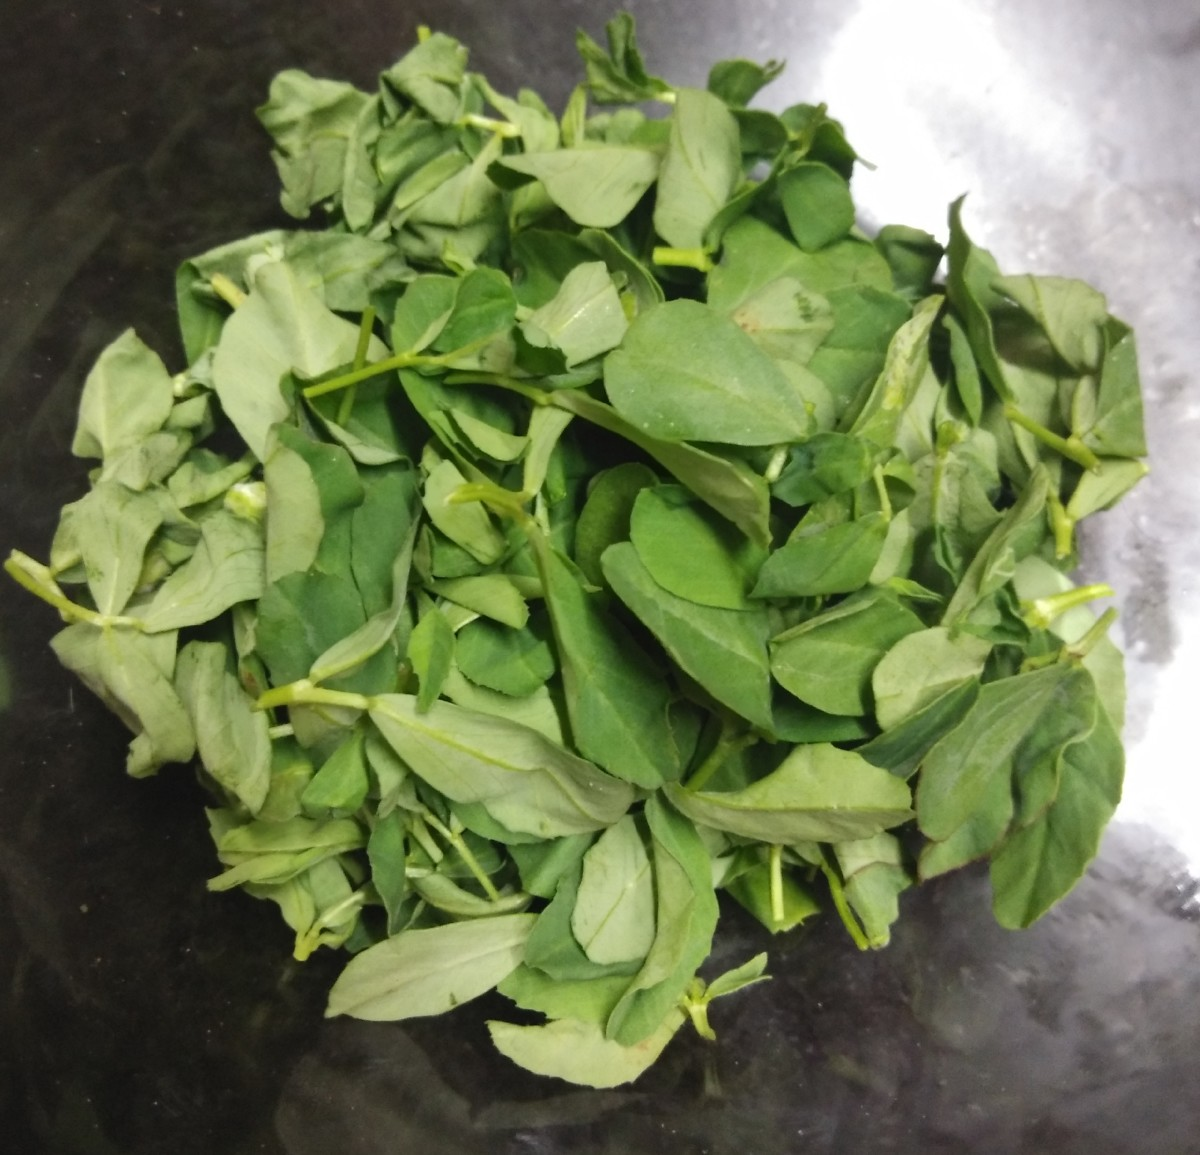 Pluck fresh fenugreek leaves from stems.